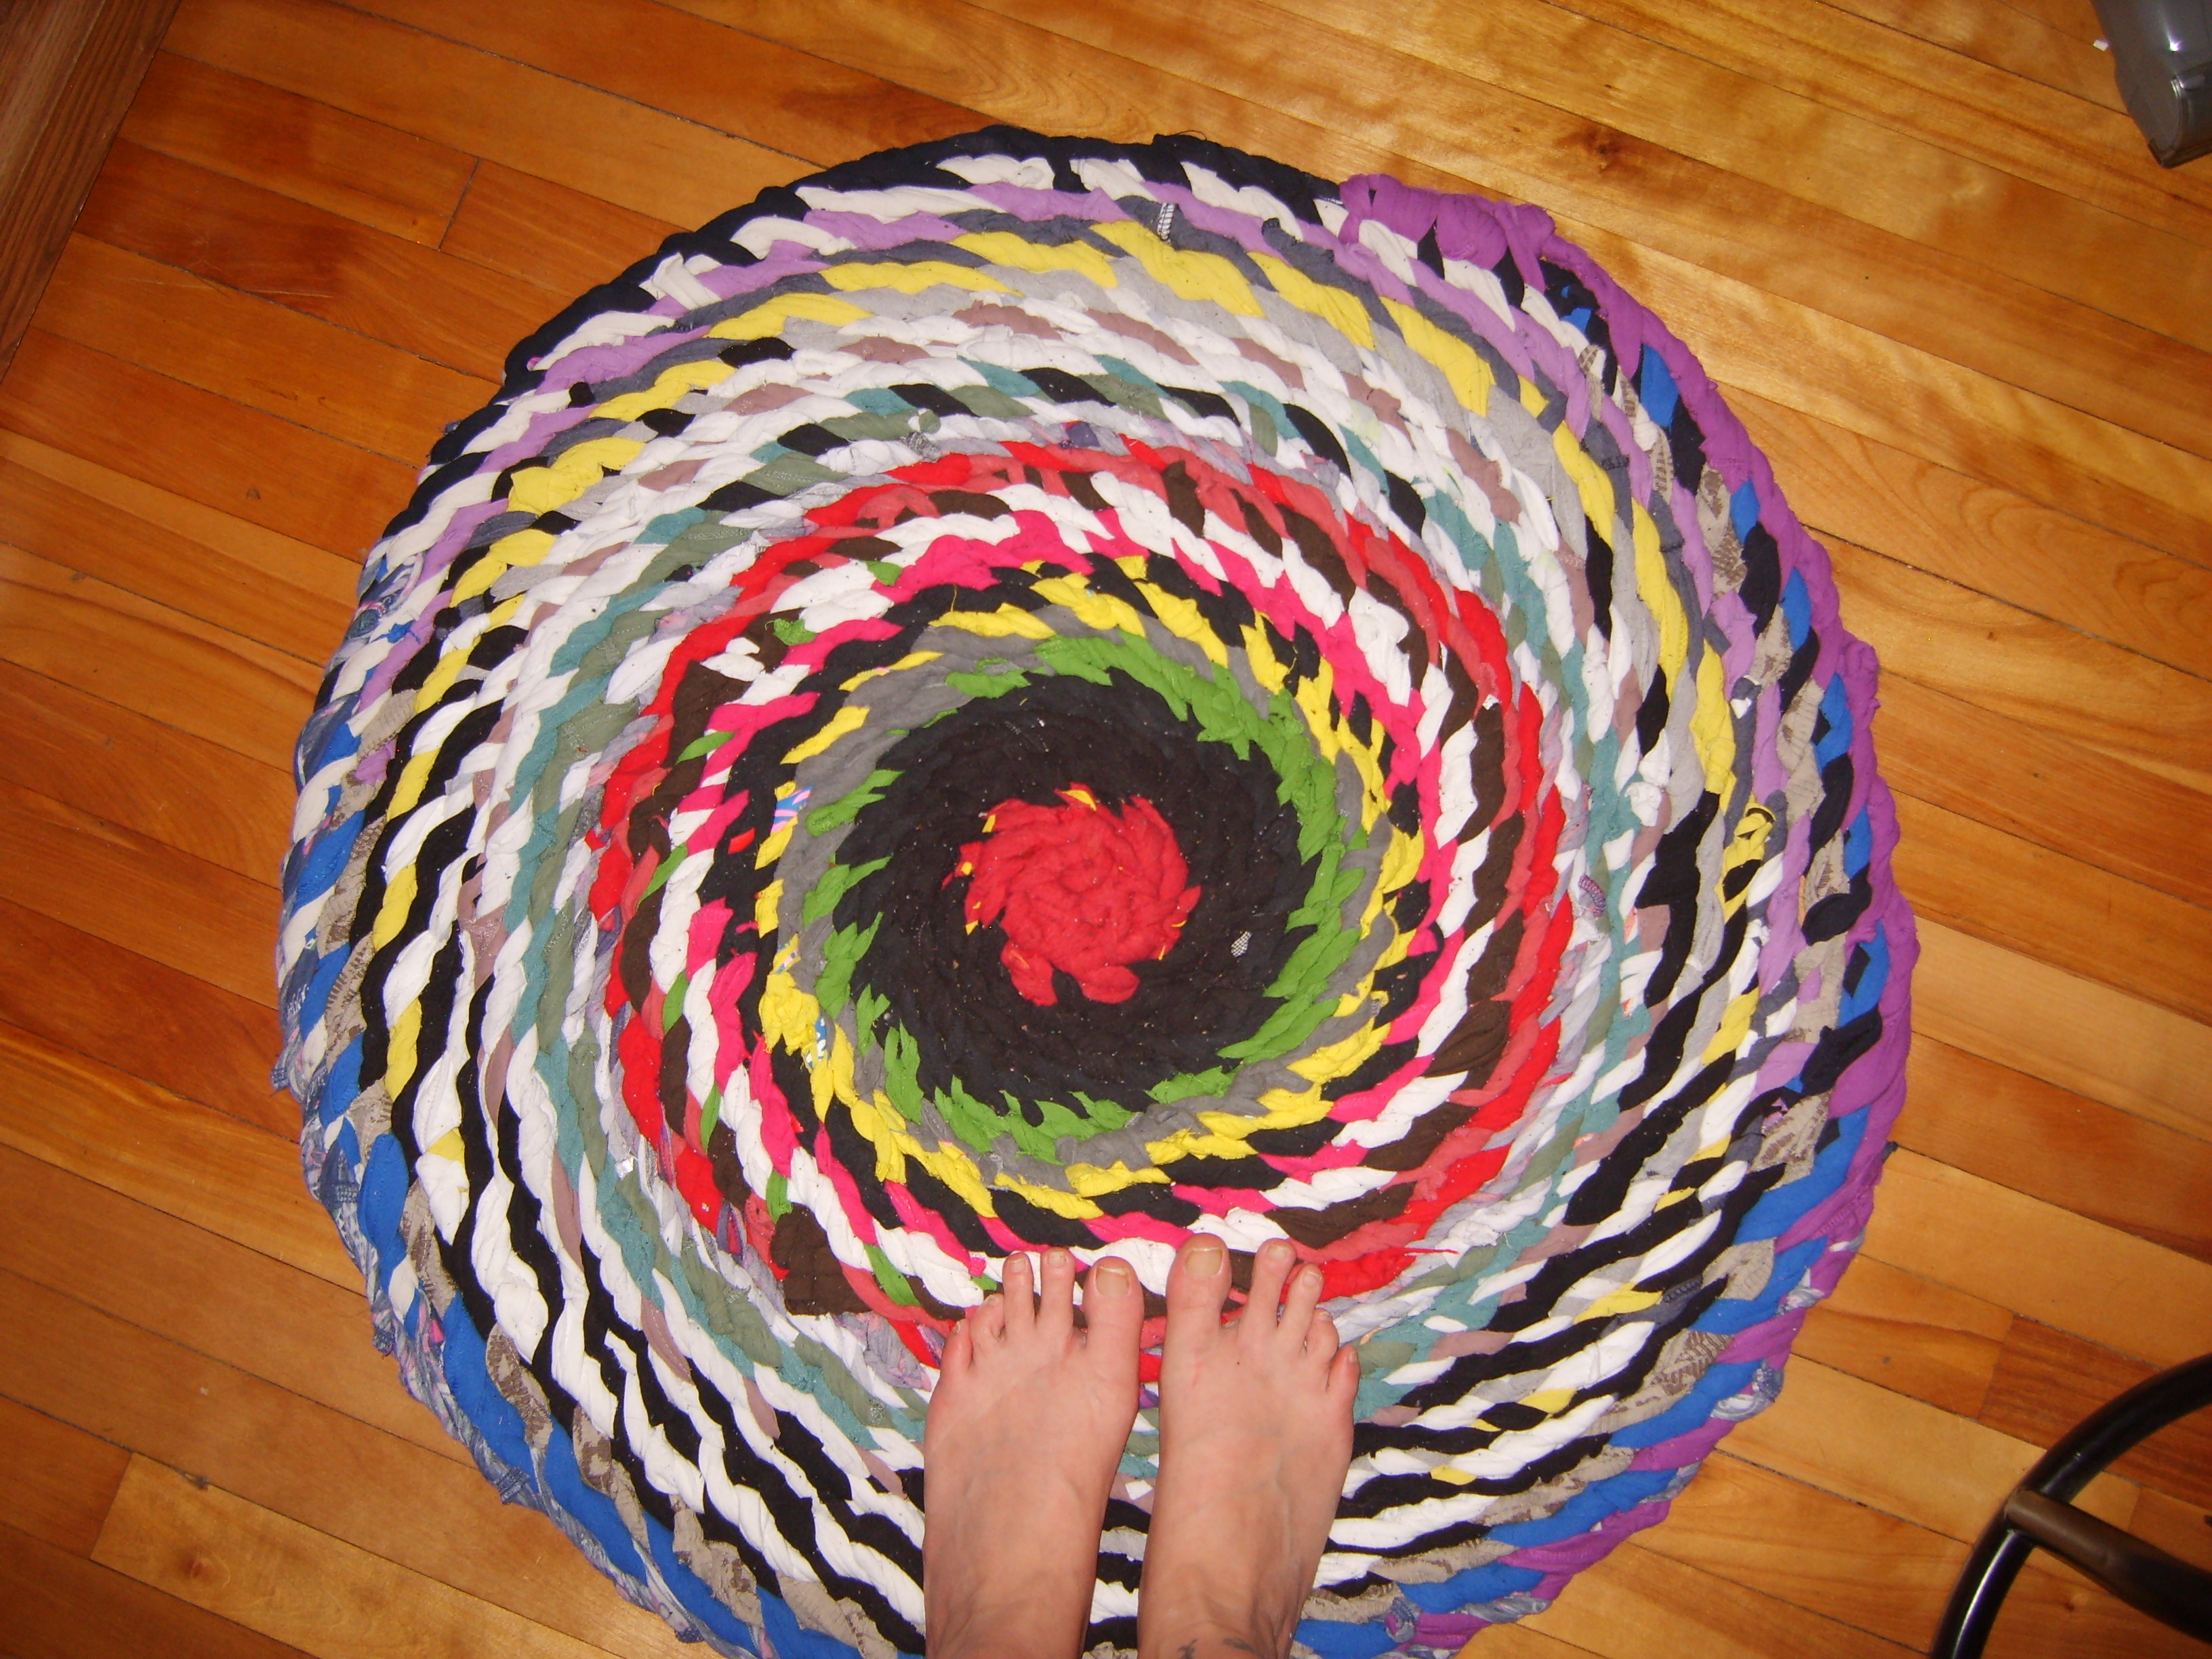 Magnificent braided rug for floorings and rugs ideas with round braided rugs and braided area rugs